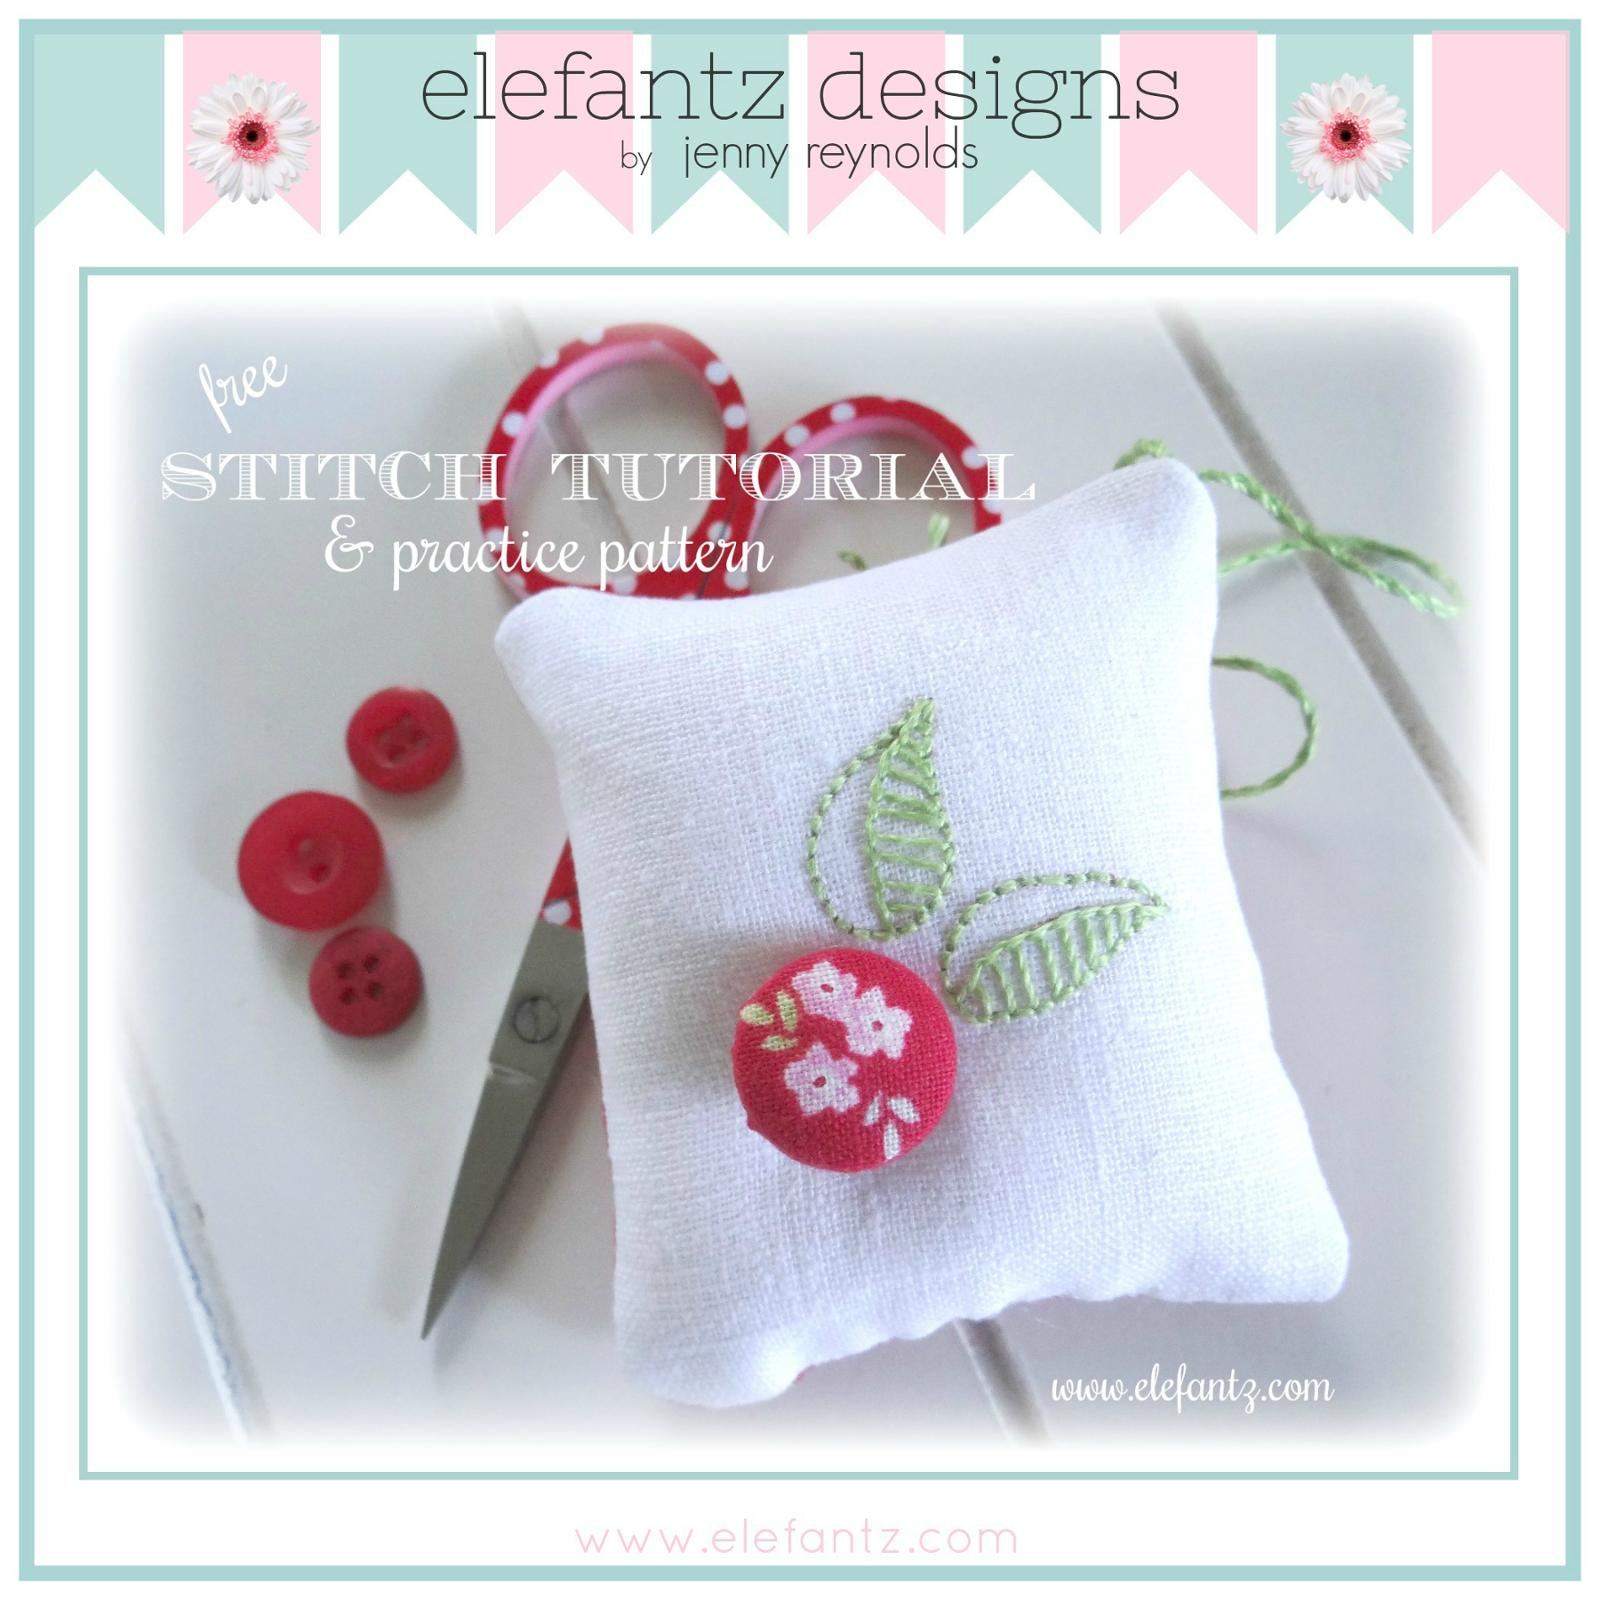 Hand Embroidery Alphabet Patterns Free Free Hand Embroidery Patterns